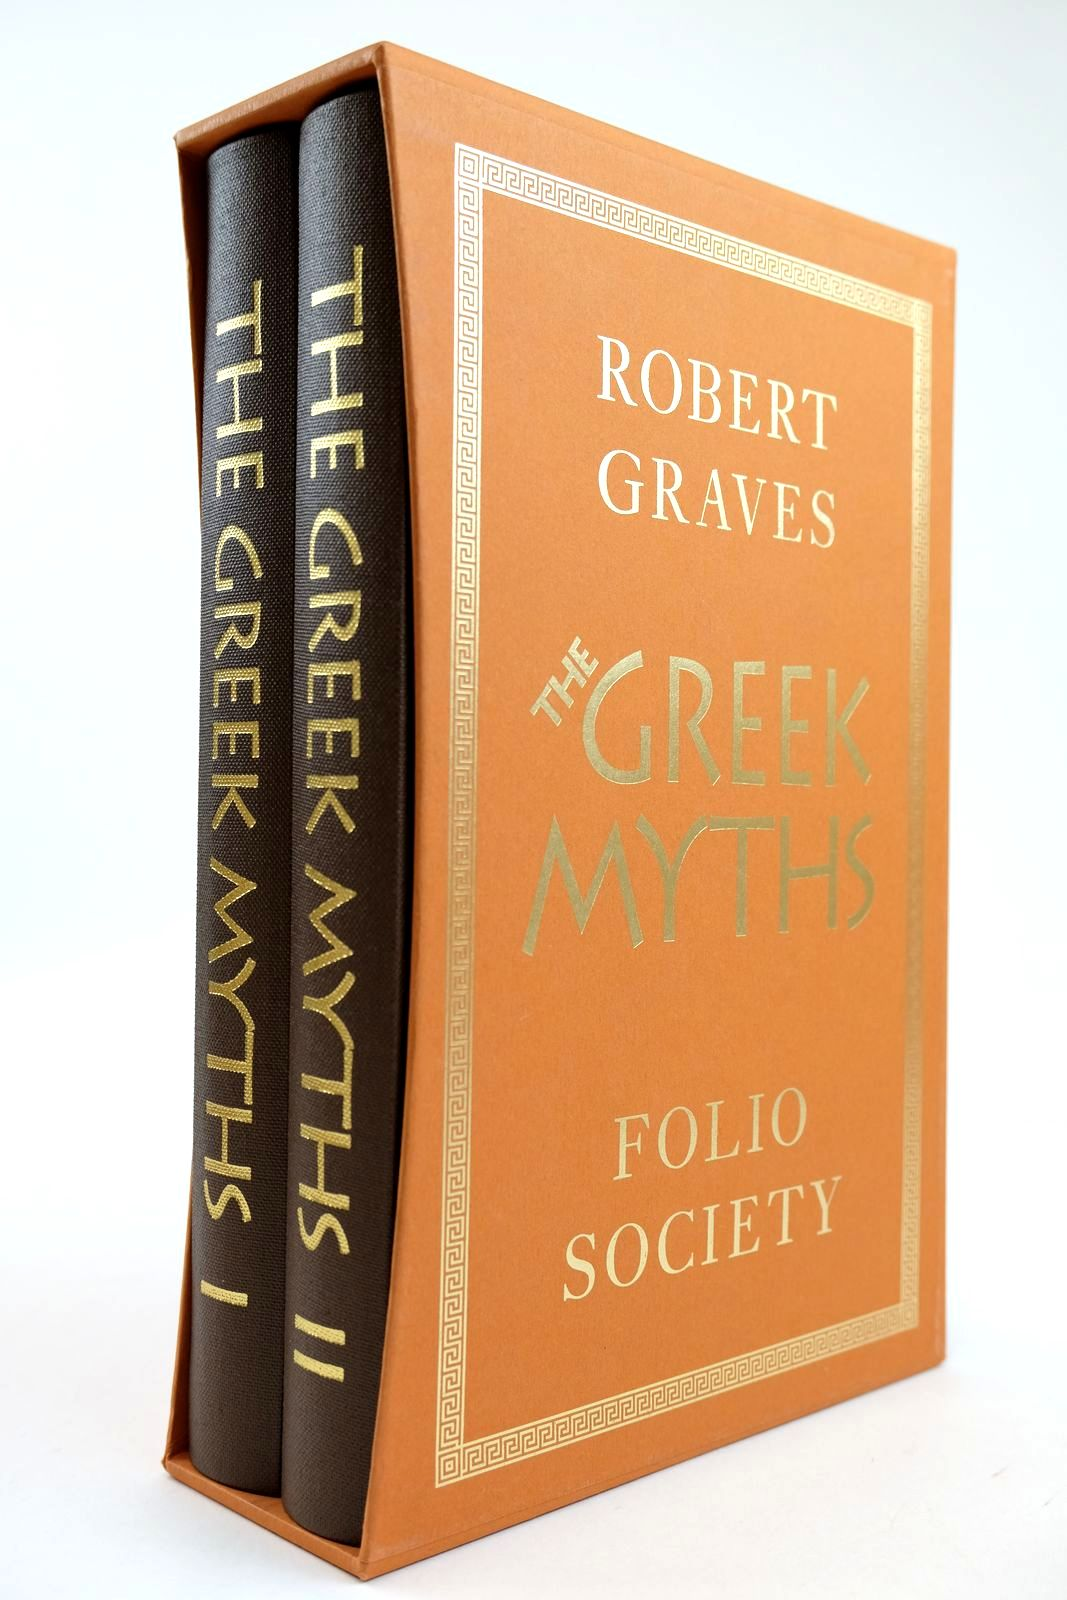 Photo of THE GREEK MYTHS (2 VOLUMES) written by Graves, Robert Mcleish, Kenneth illustrated by Baker, Grahame published by Folio Society (STOCK CODE: 2132109)  for sale by Stella & Rose's Books